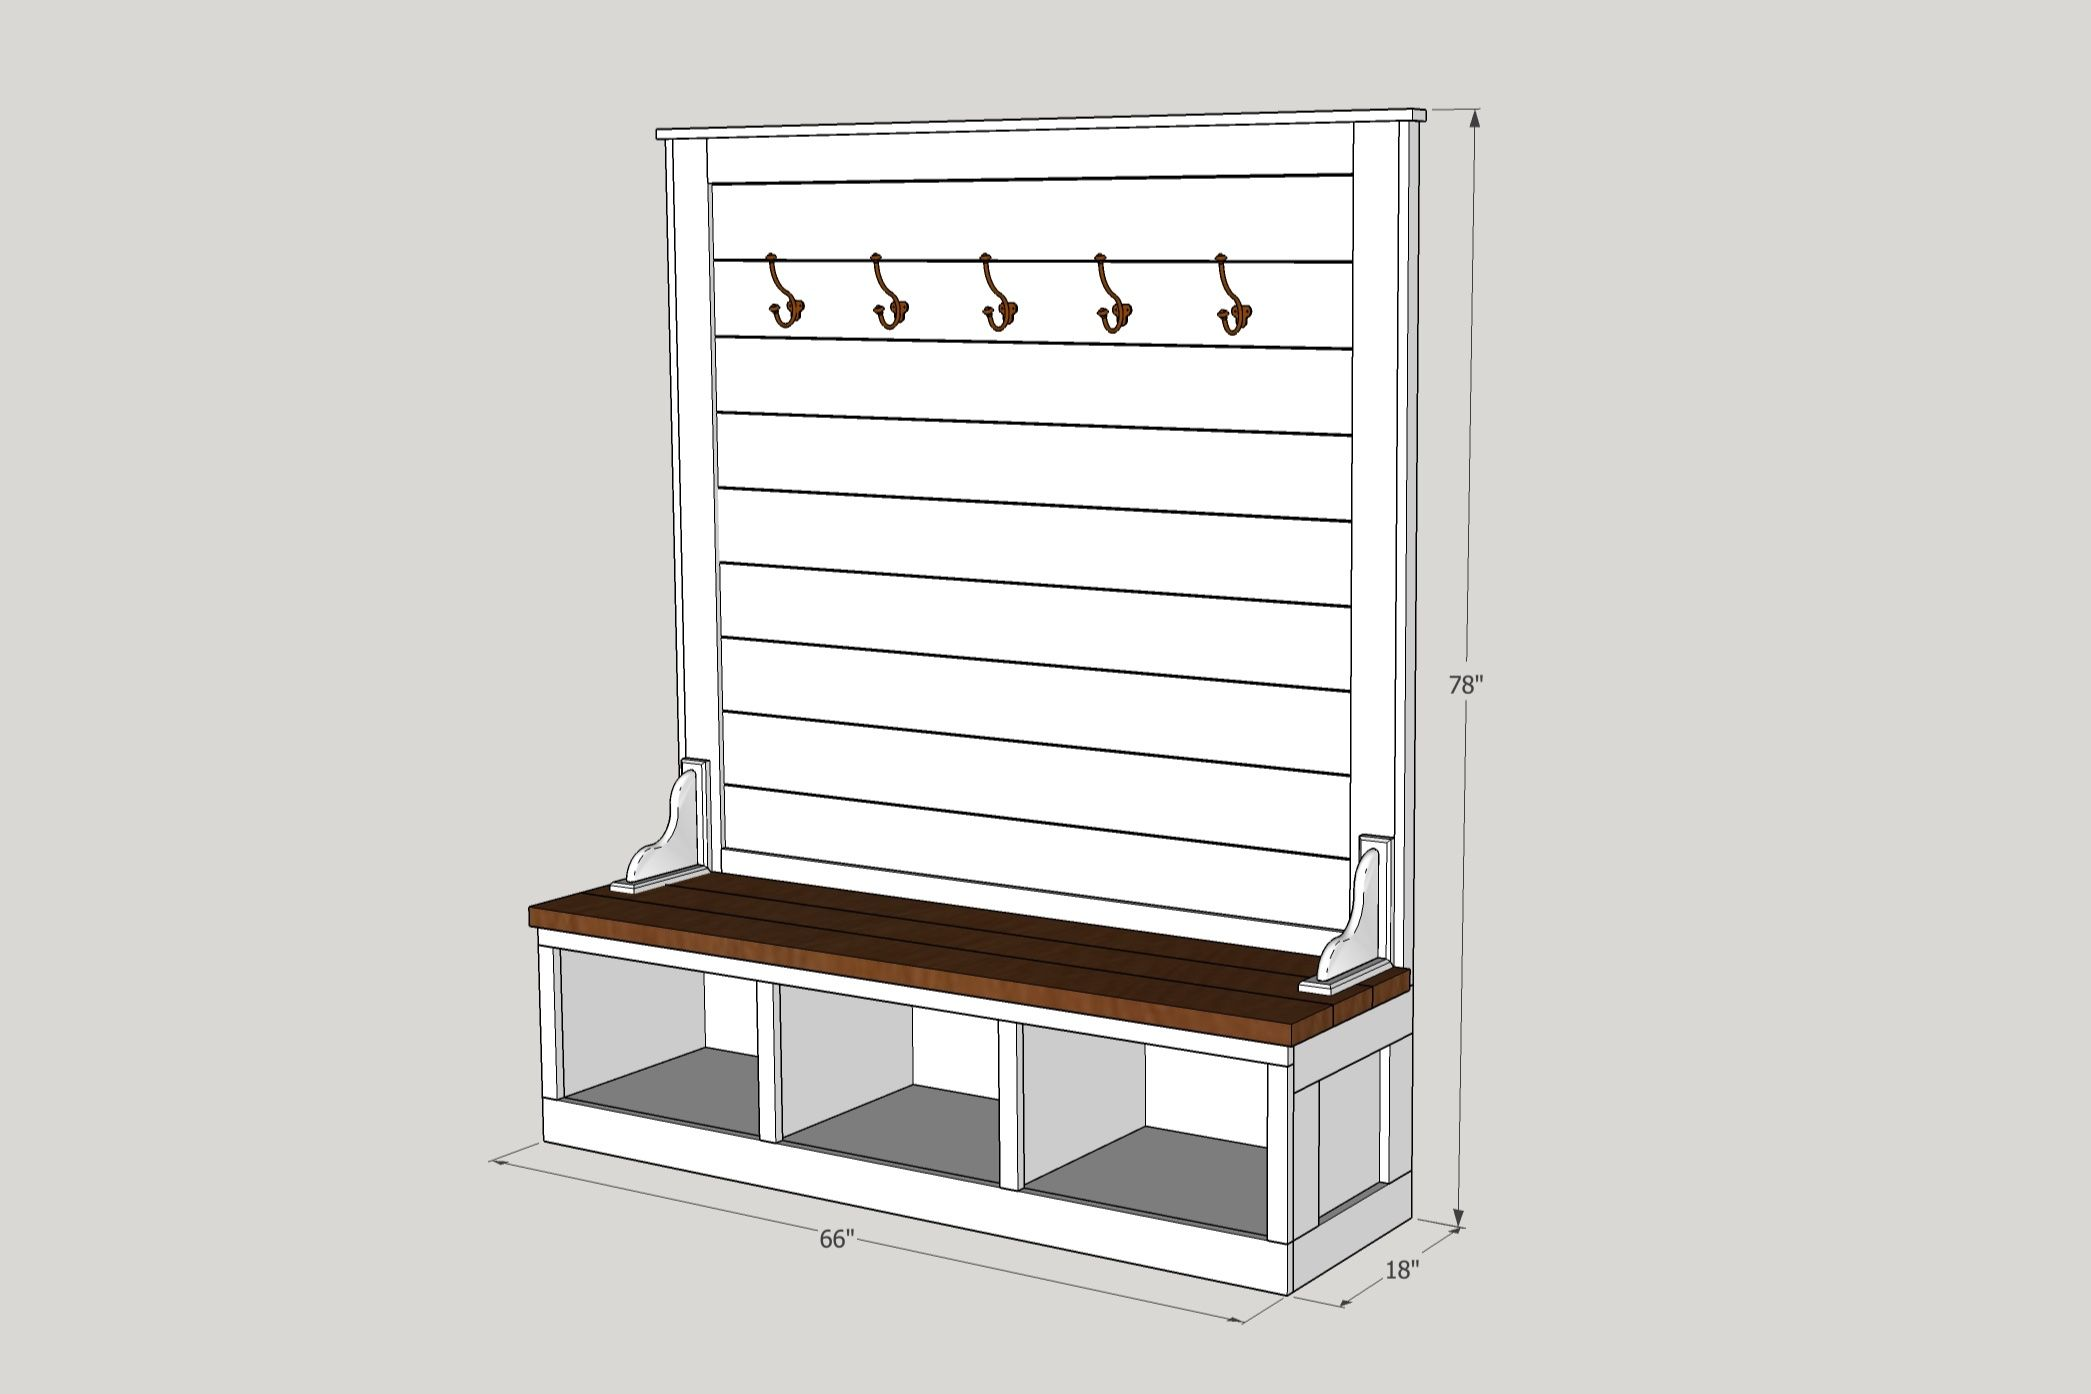 Shiplap Hall Tree Bench Plans Updated 1 8 19 The Awesome Orange Hall Tree Bench Diy Storage Bench Diy Storage Bench Plans